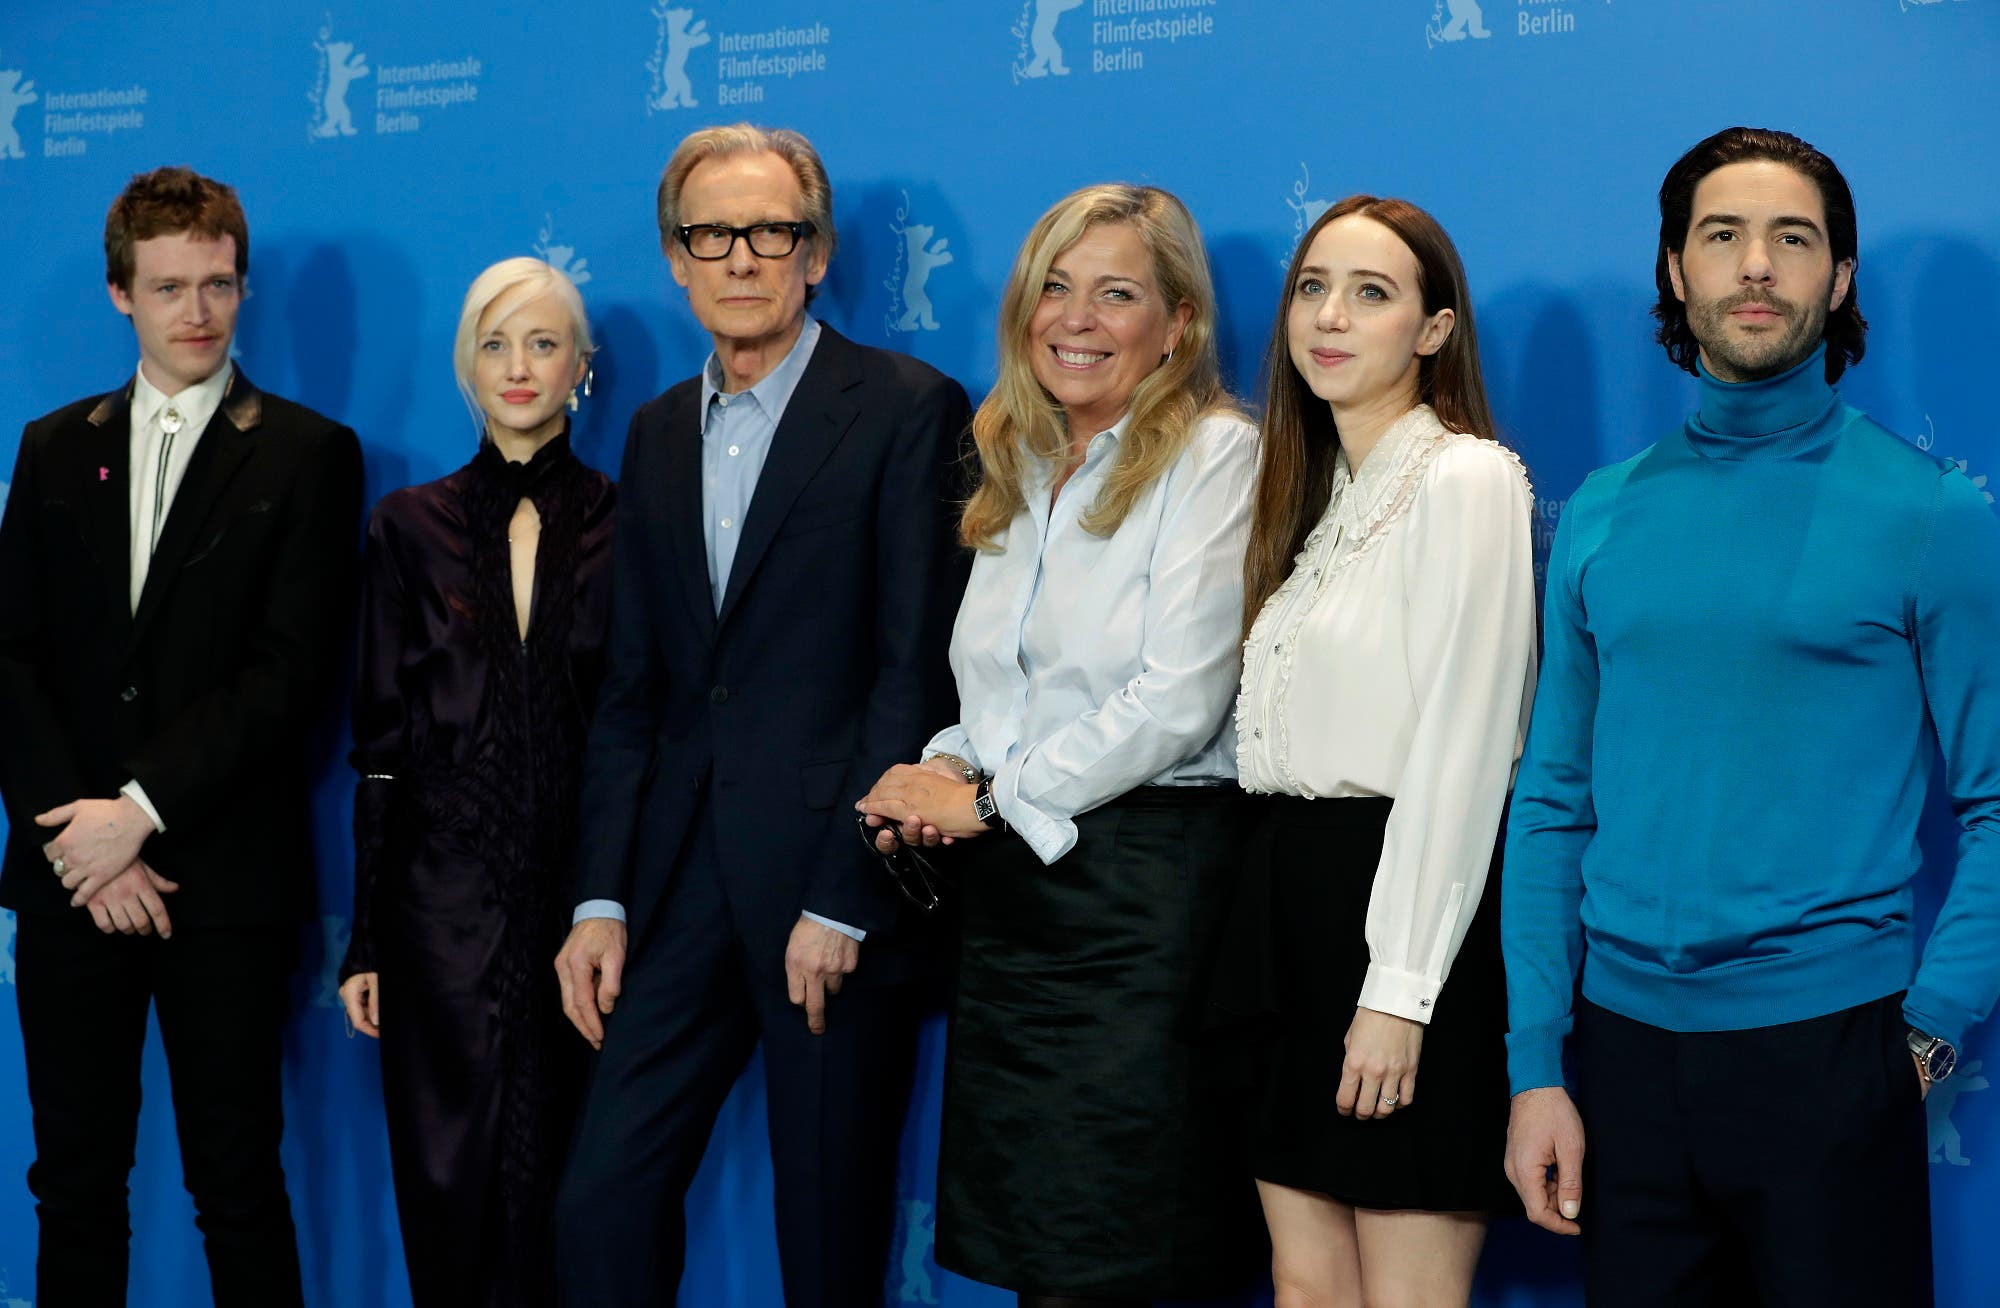 'The Kindness of Strangers' cast at the 2019 Berlinale Film Festival in Berlin. (AP)